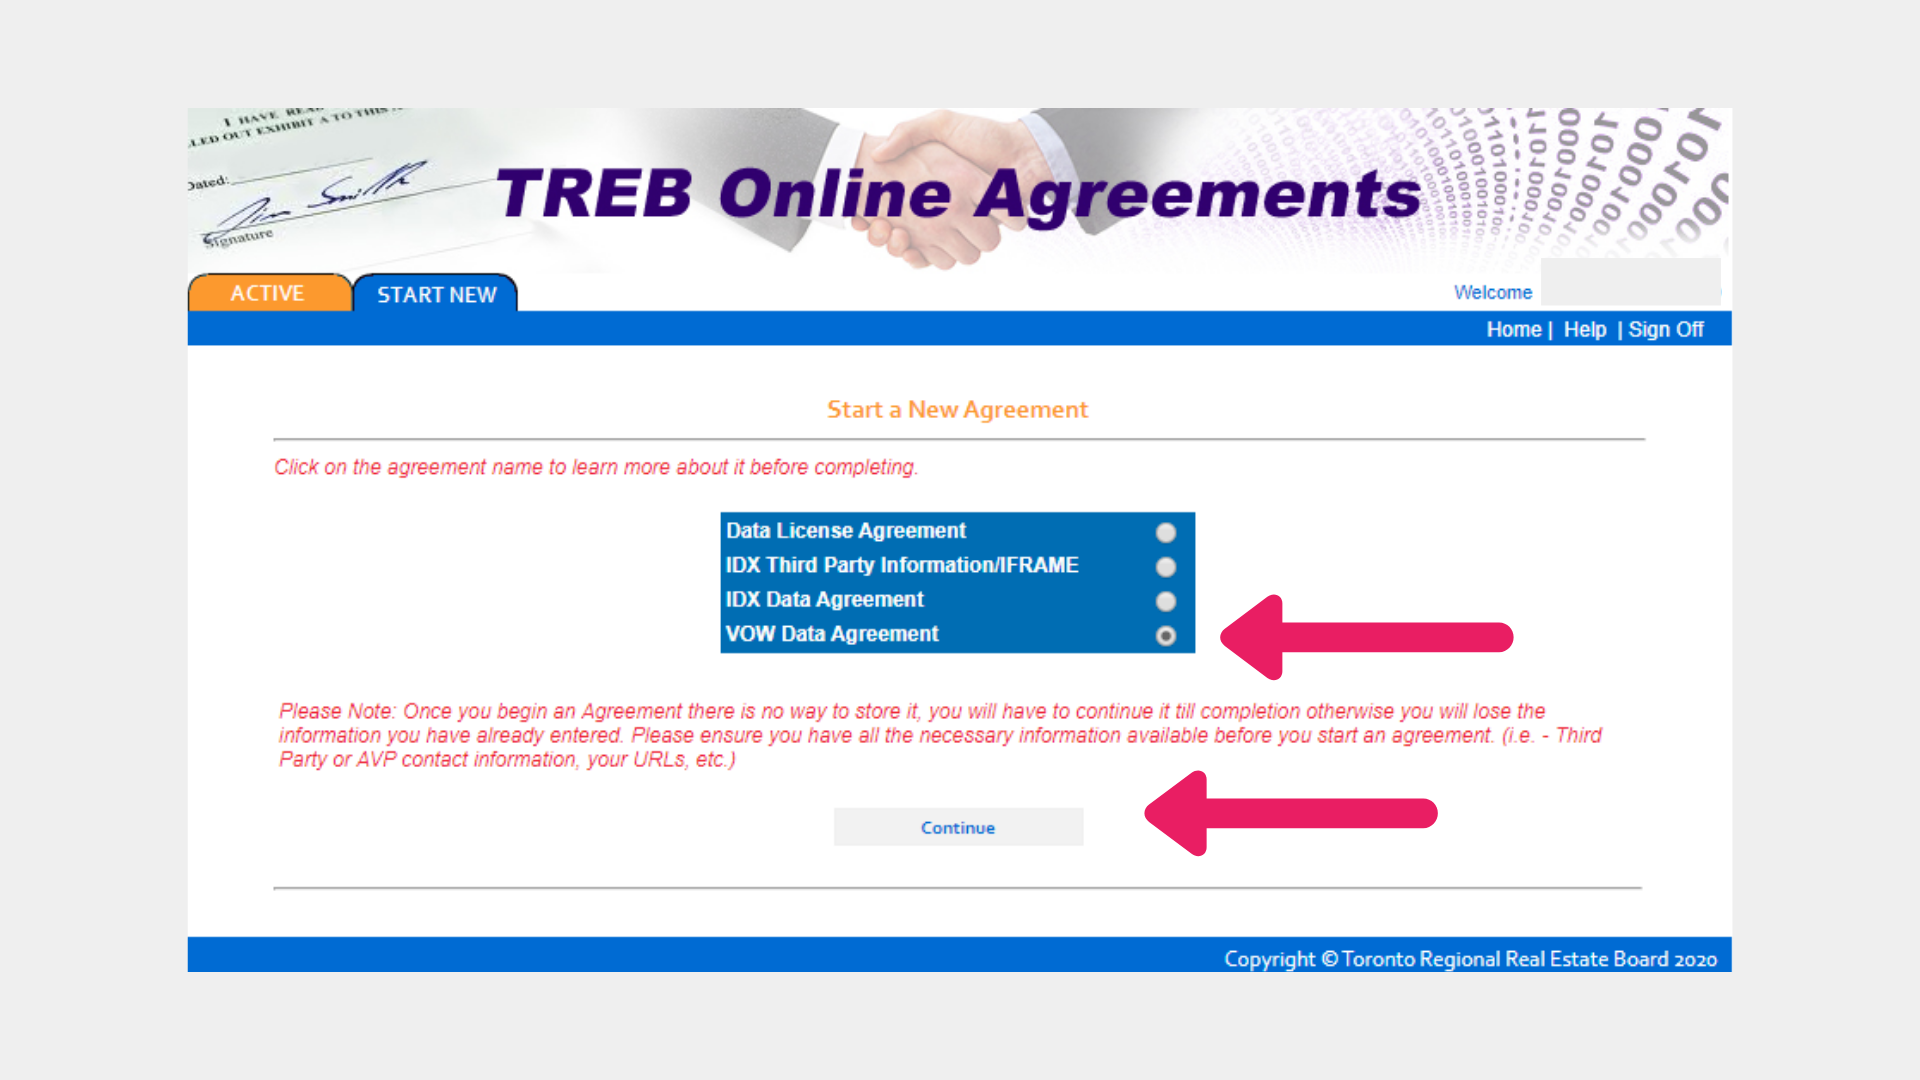 TRREB_Online_Agreements_-_Guideline__18_.png